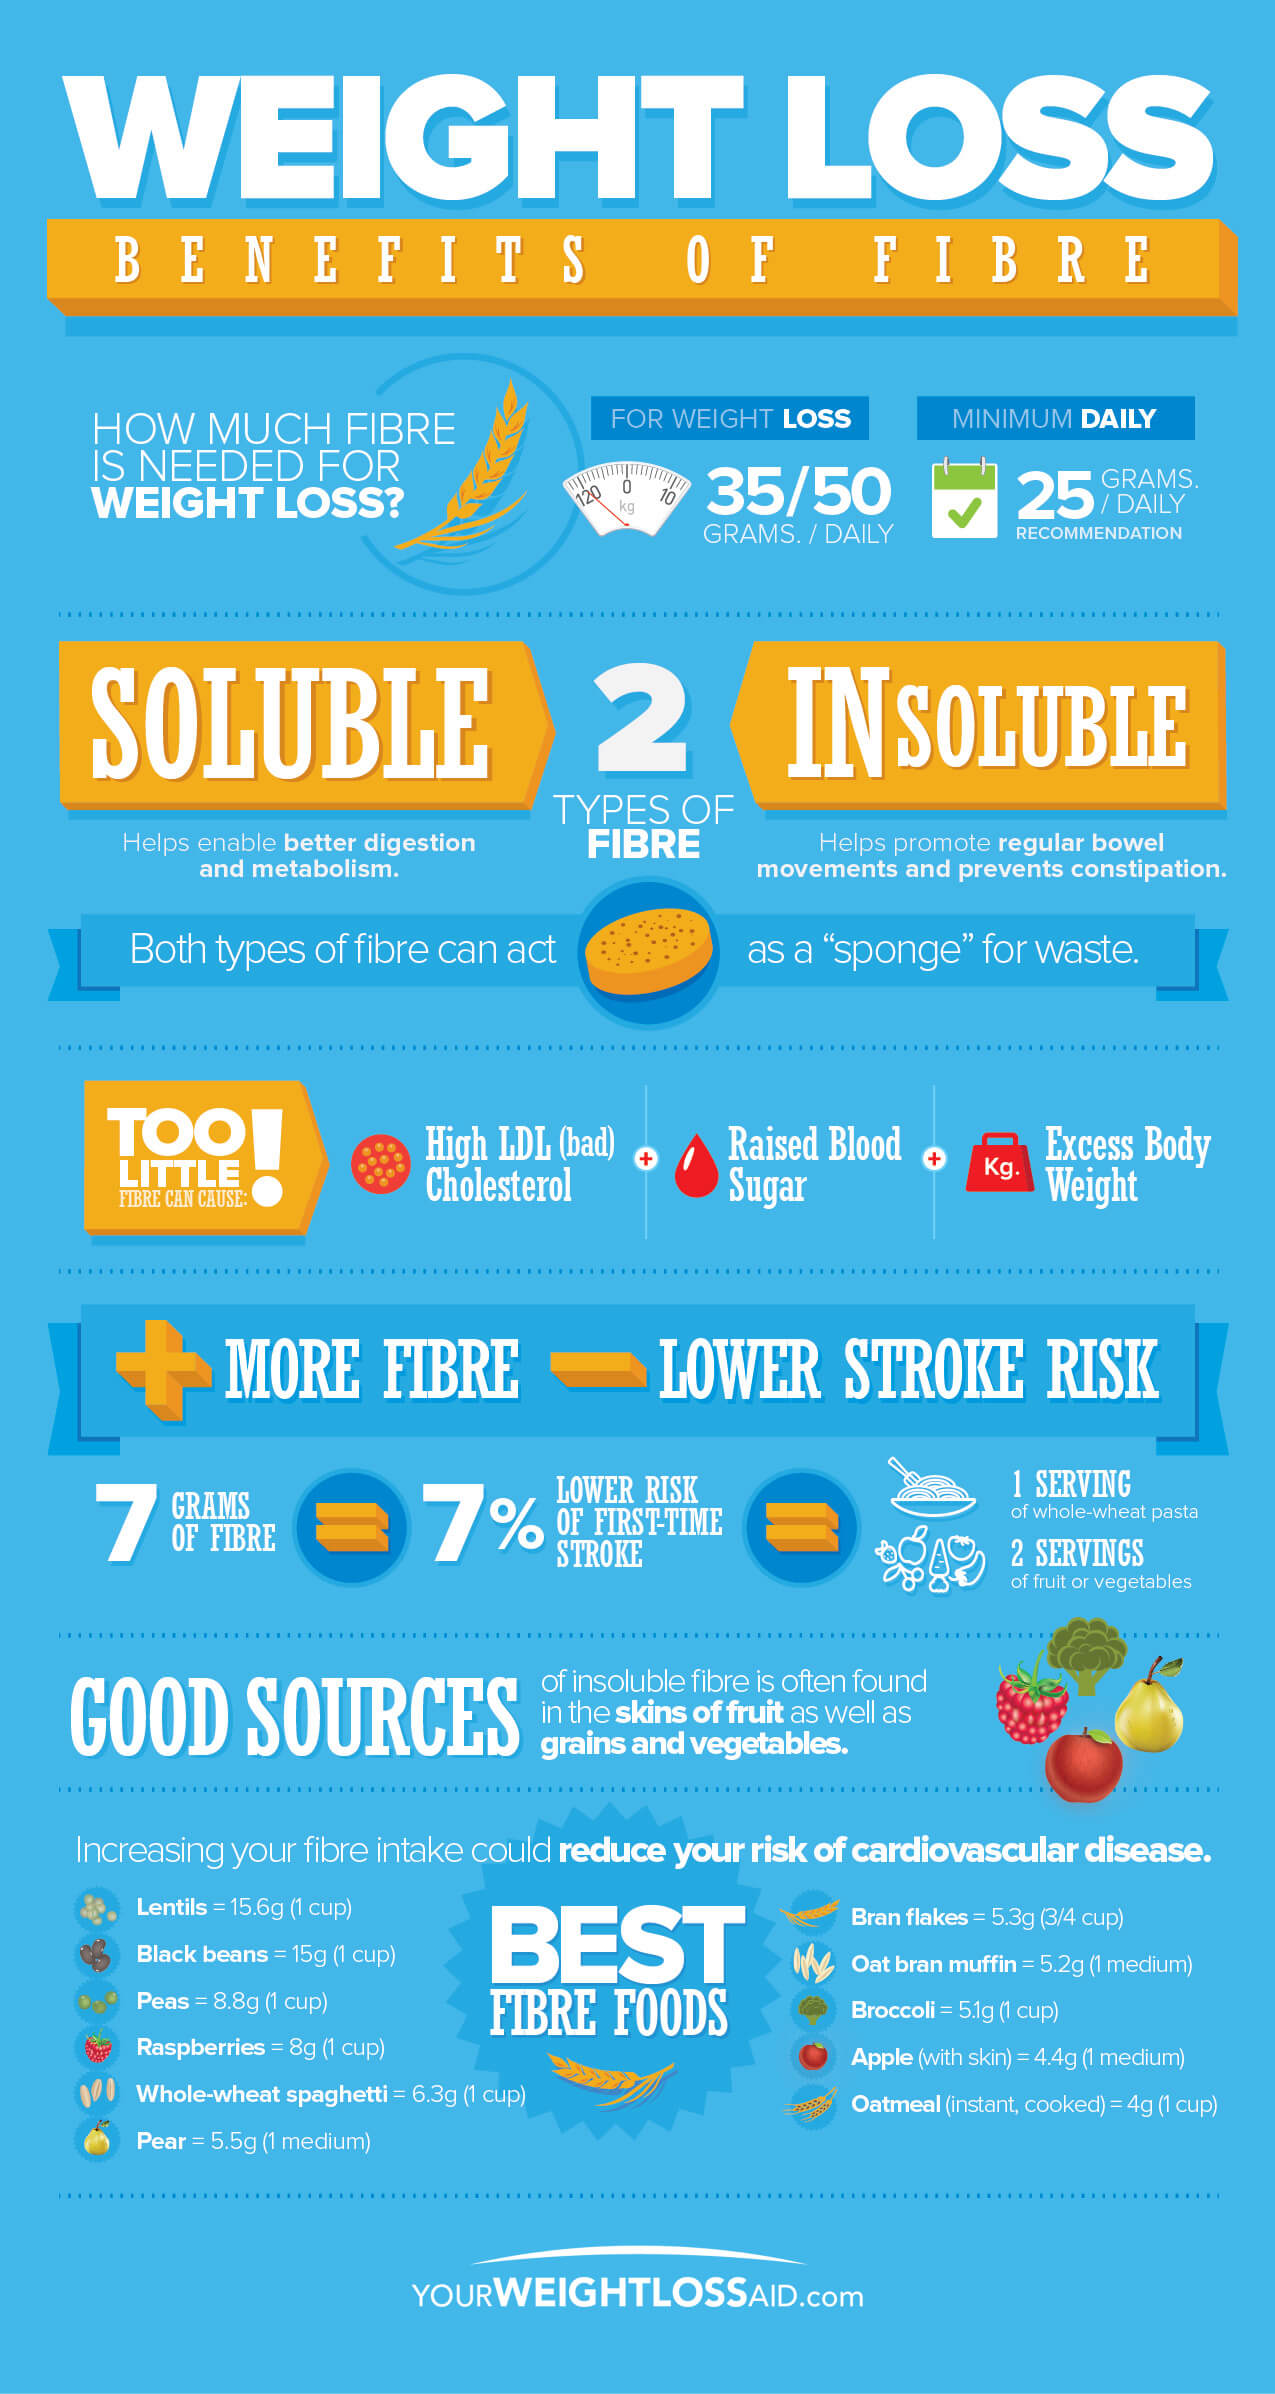 Weight-Loss-Benefits-of-Fibre-infographic